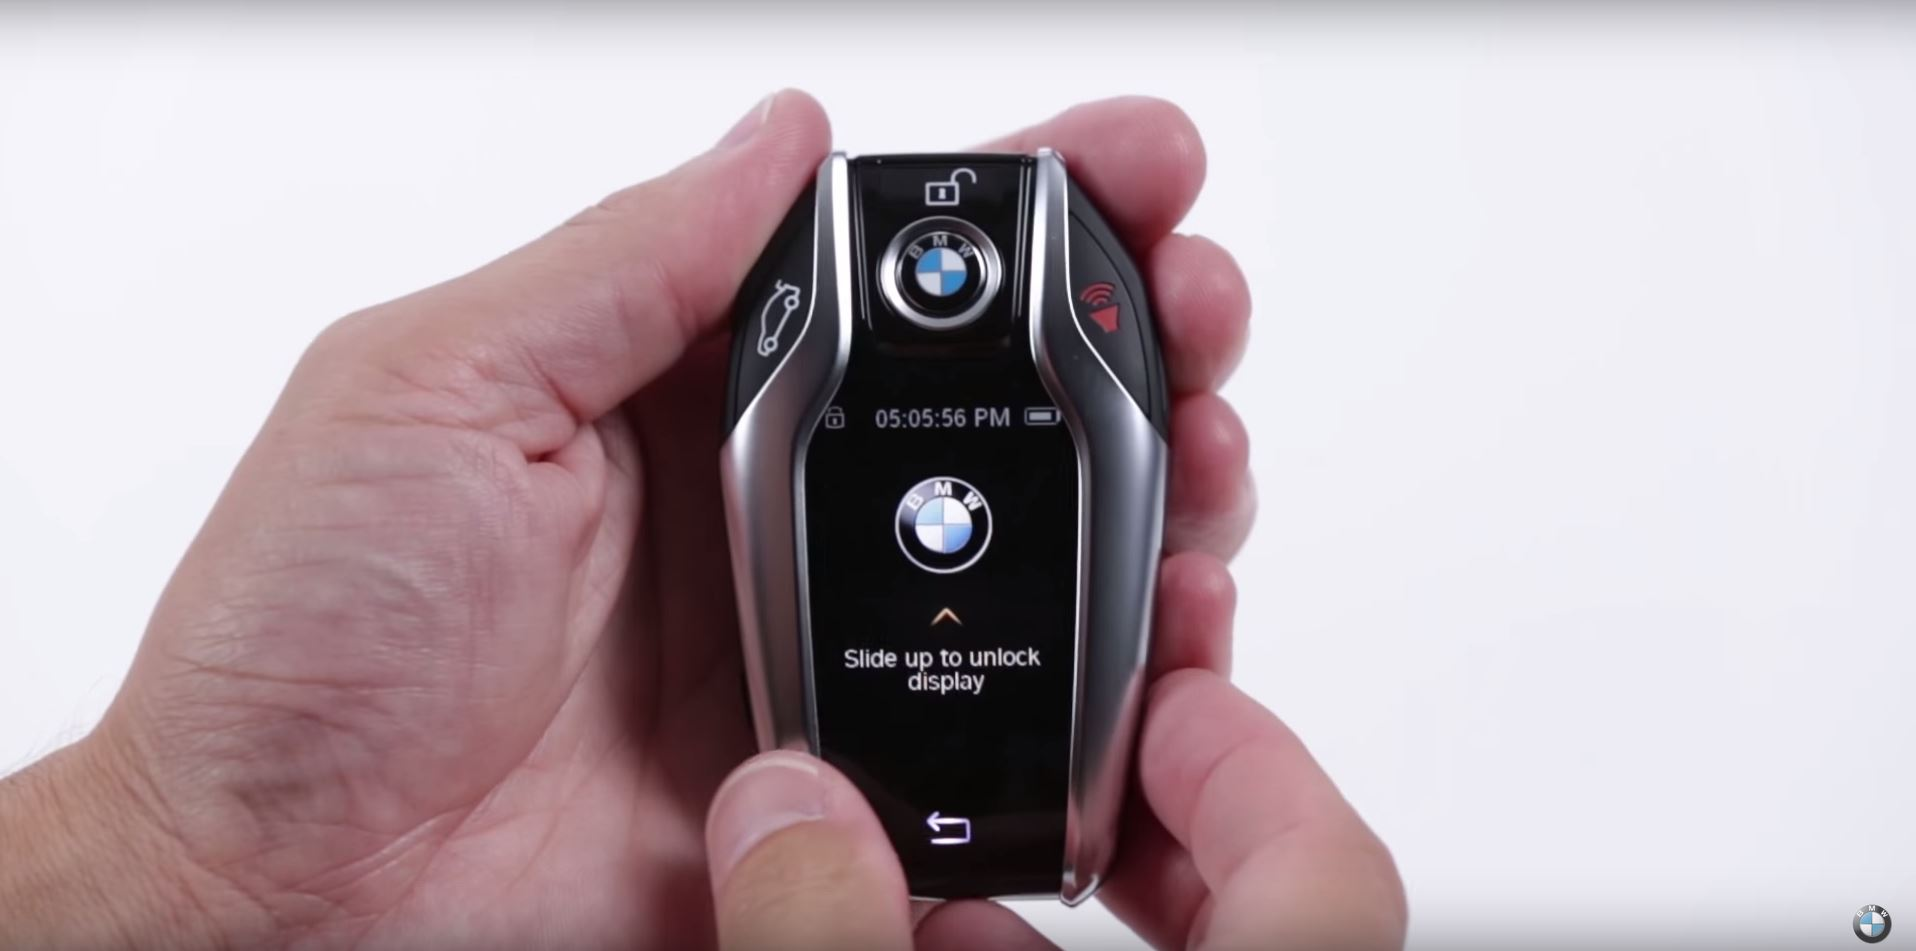 2016 BMW 7 Series Display Key Functions Showcased Video